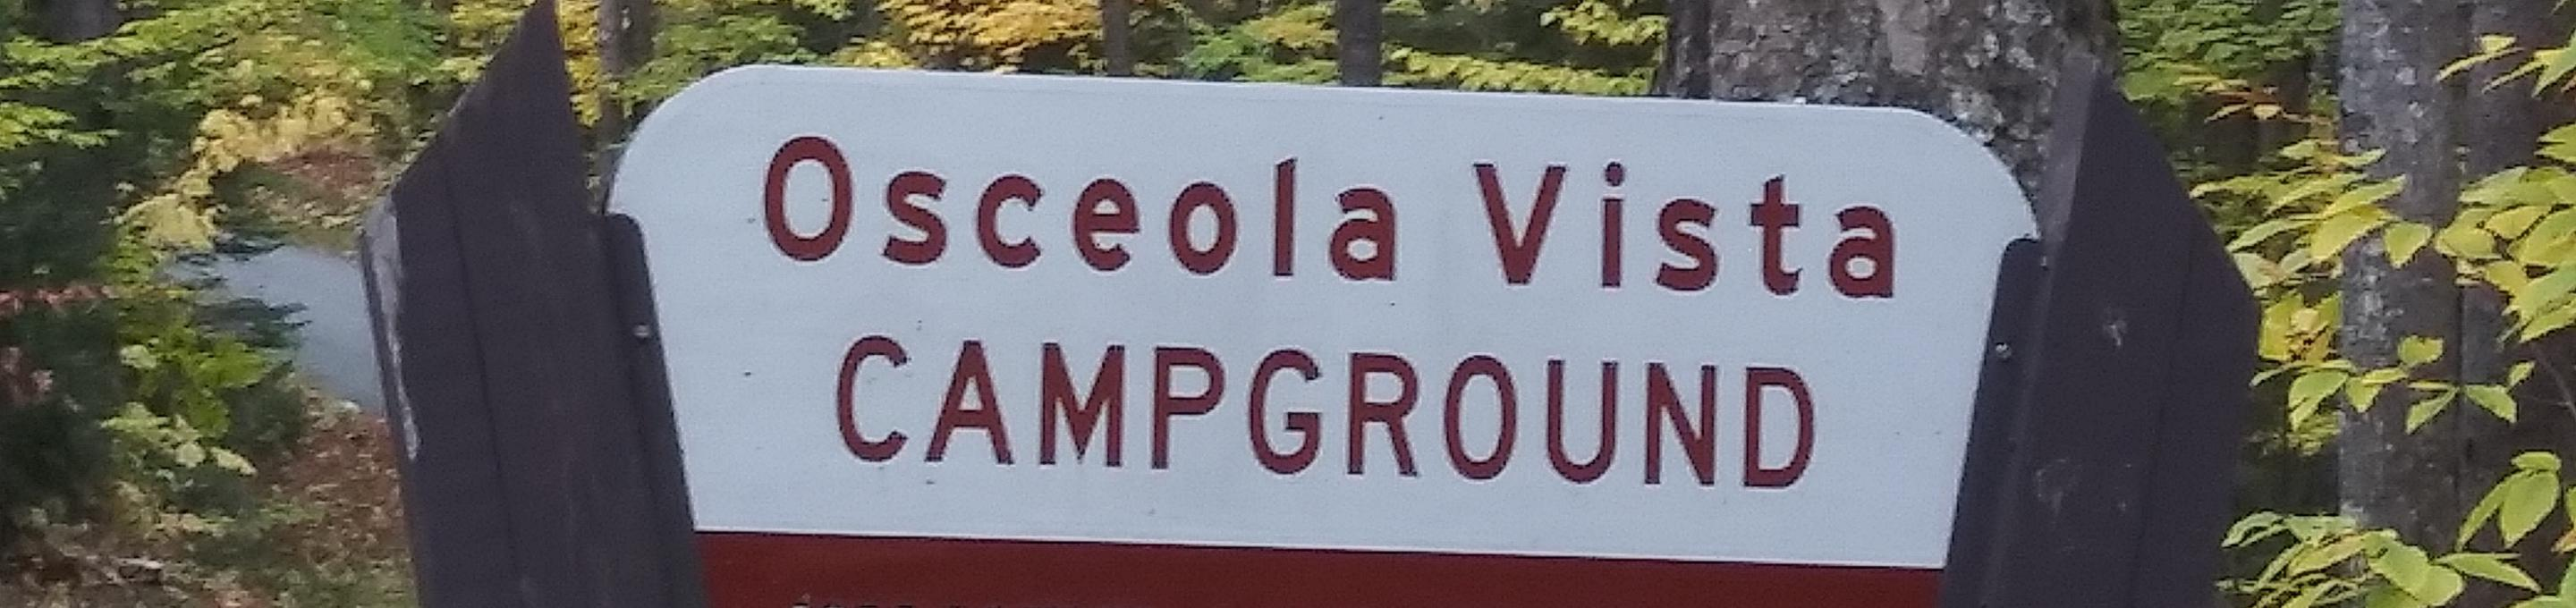 OSCEOLA VISTA CAMPGROUND